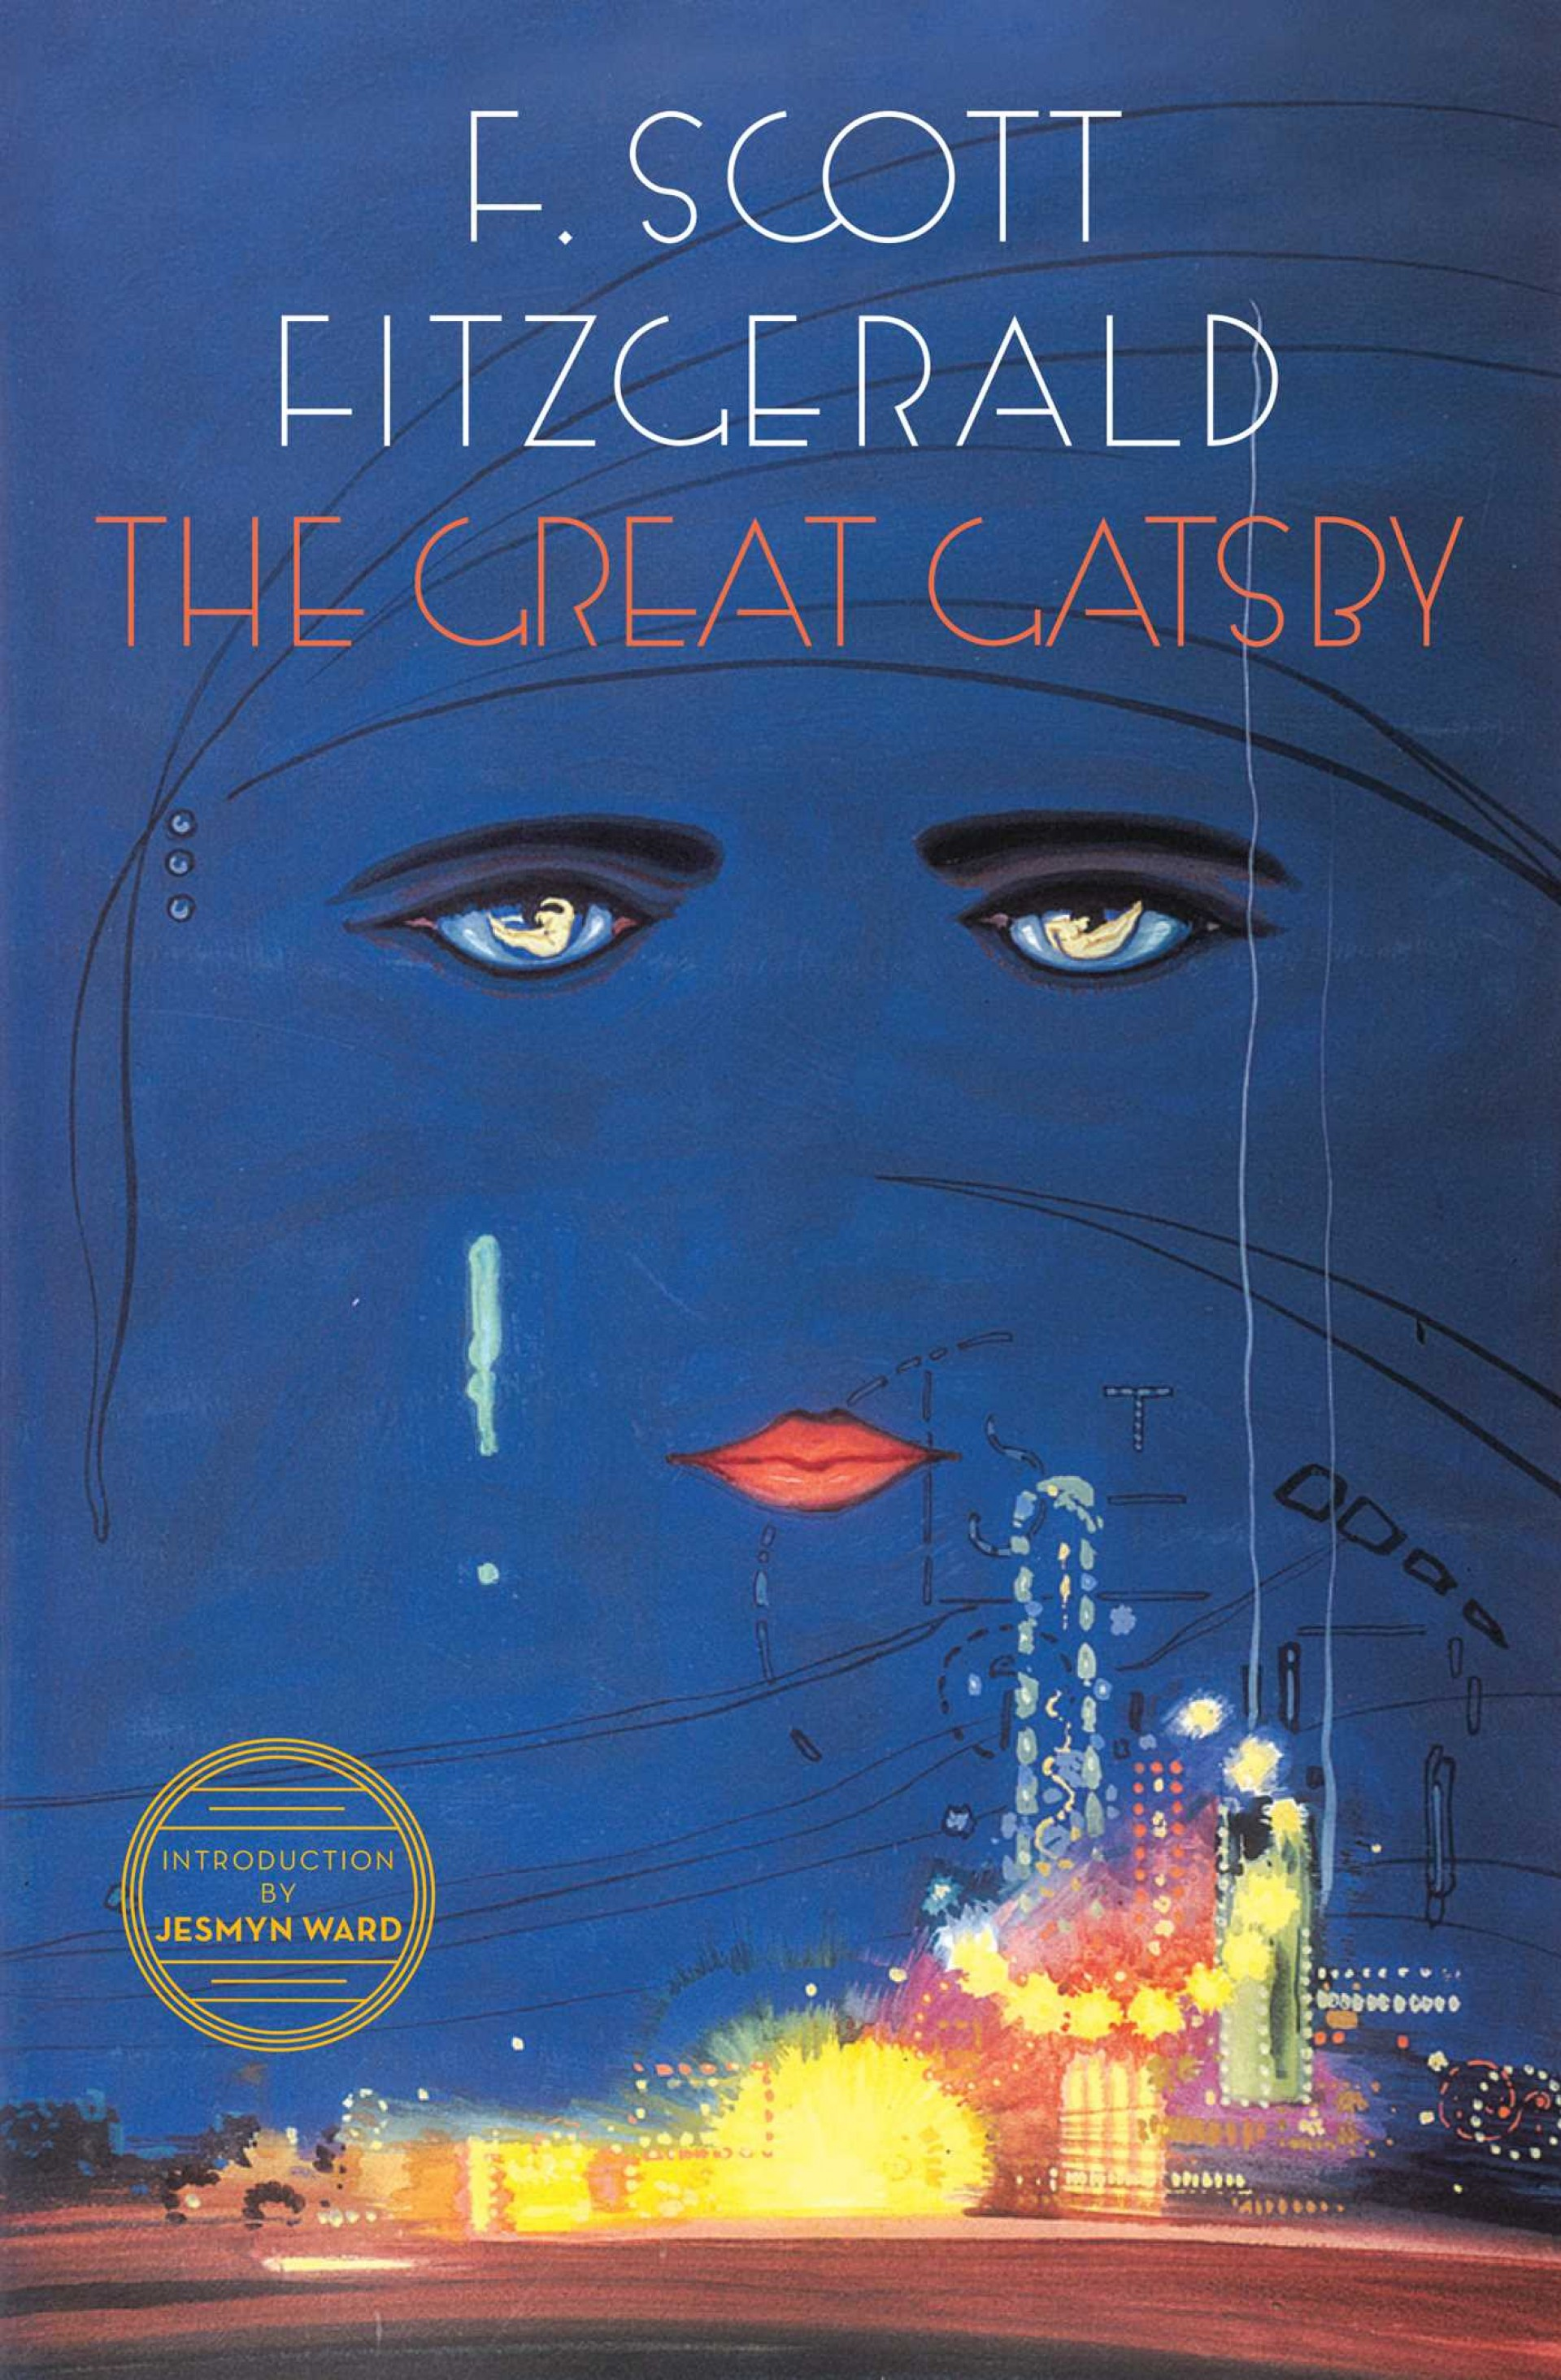 026 Essay Example The Great Gatsby Topics 9780743273565 Hr Exceptional Prompts American Dream Questions And Answers Research 1920